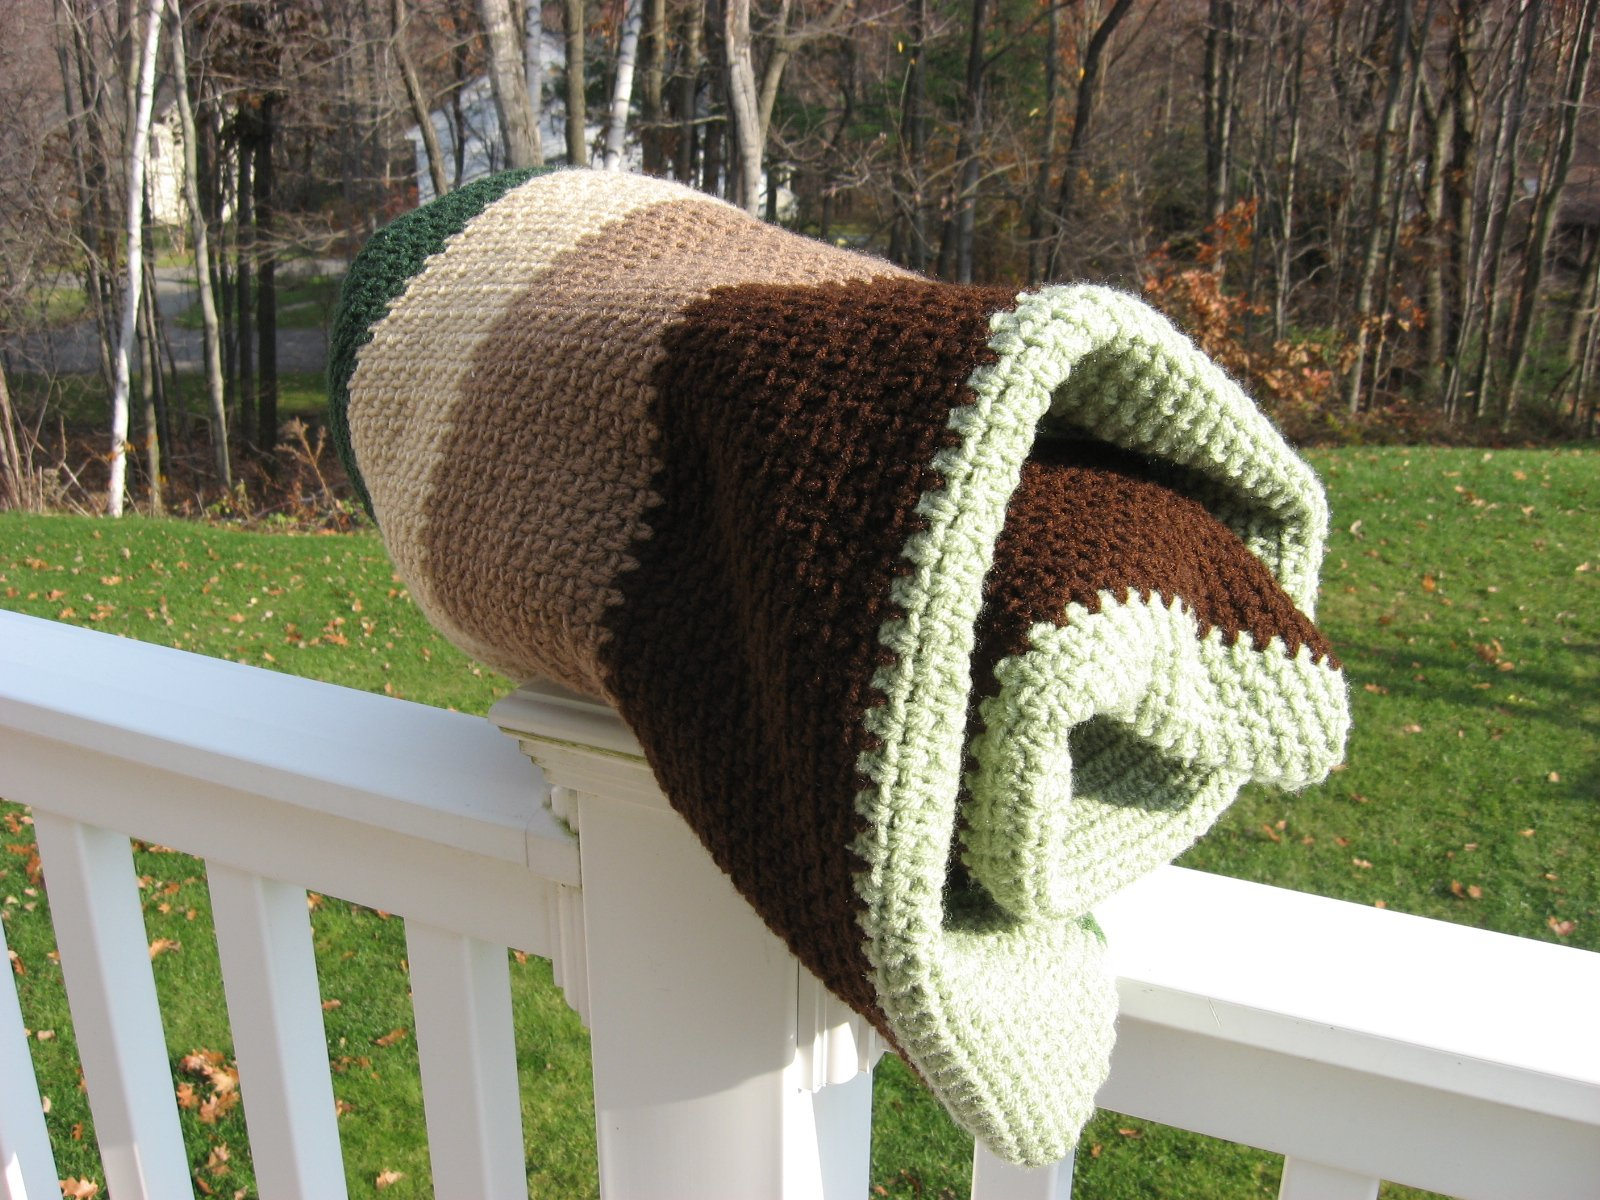 Hooked on Needles: My 2011 Scrap Afghan in Crocheted Woven Stitch ...